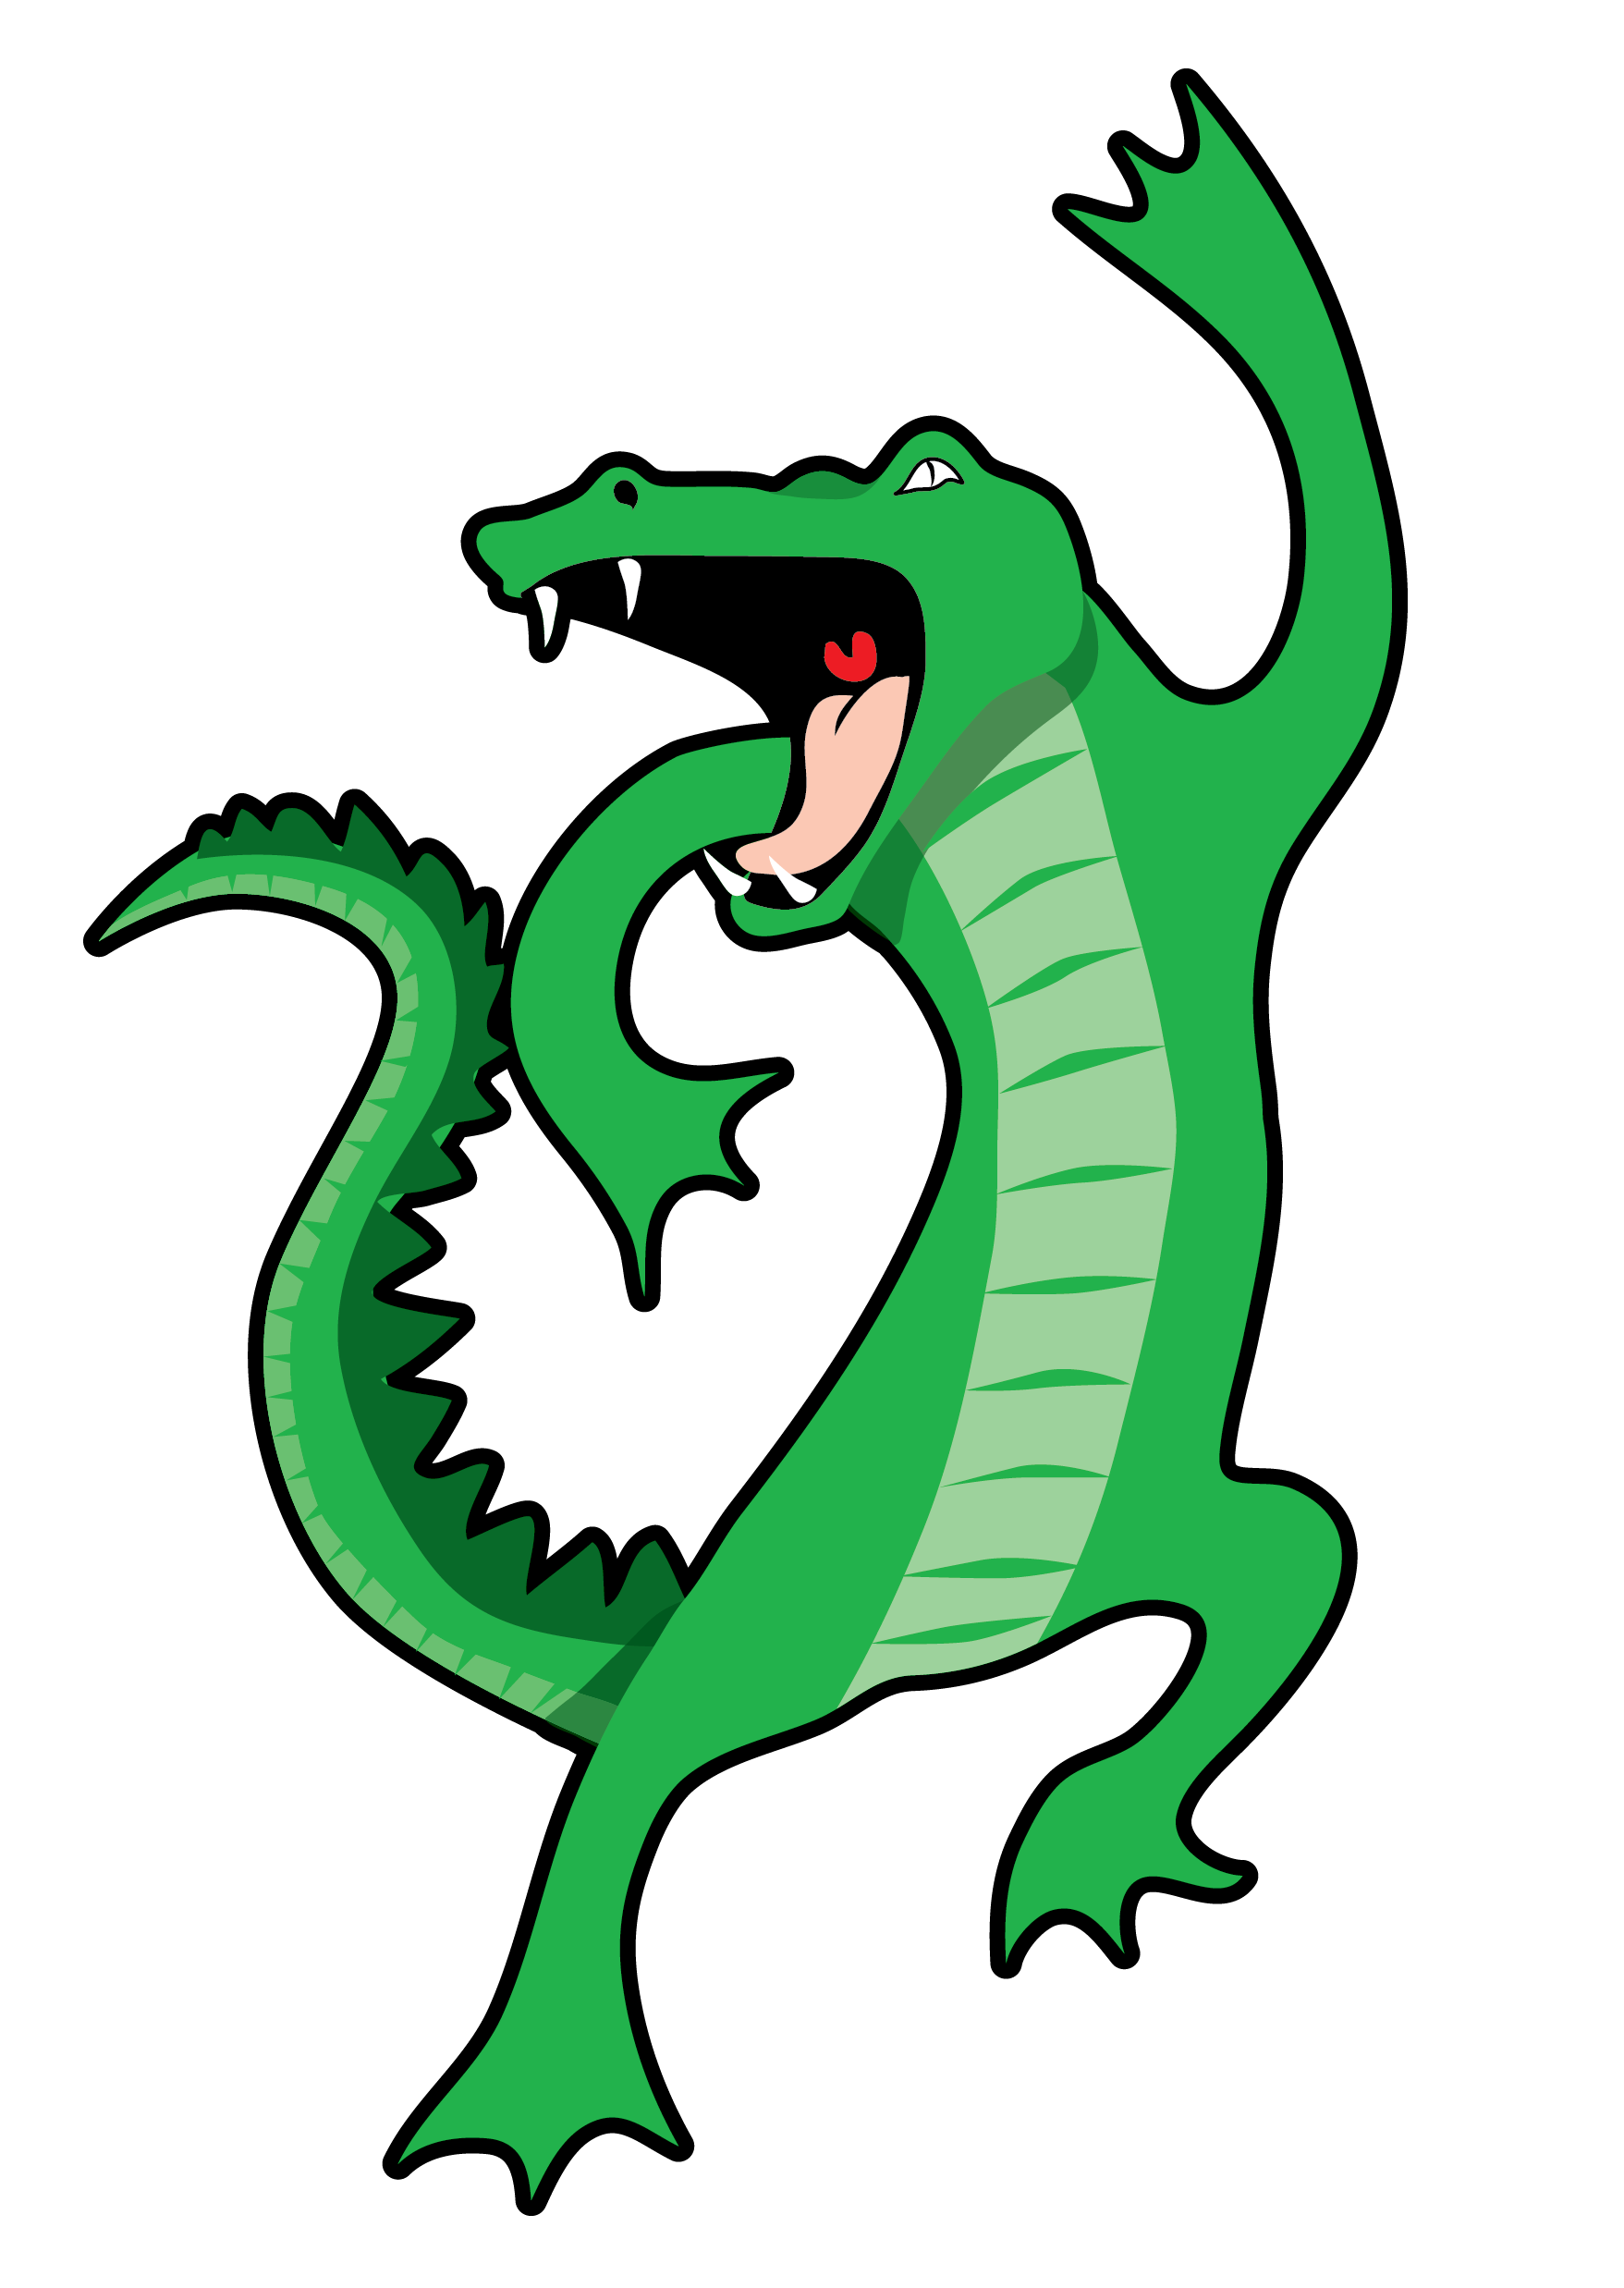 Gator clipart dancing, Gator dancing Transparent FREE for.